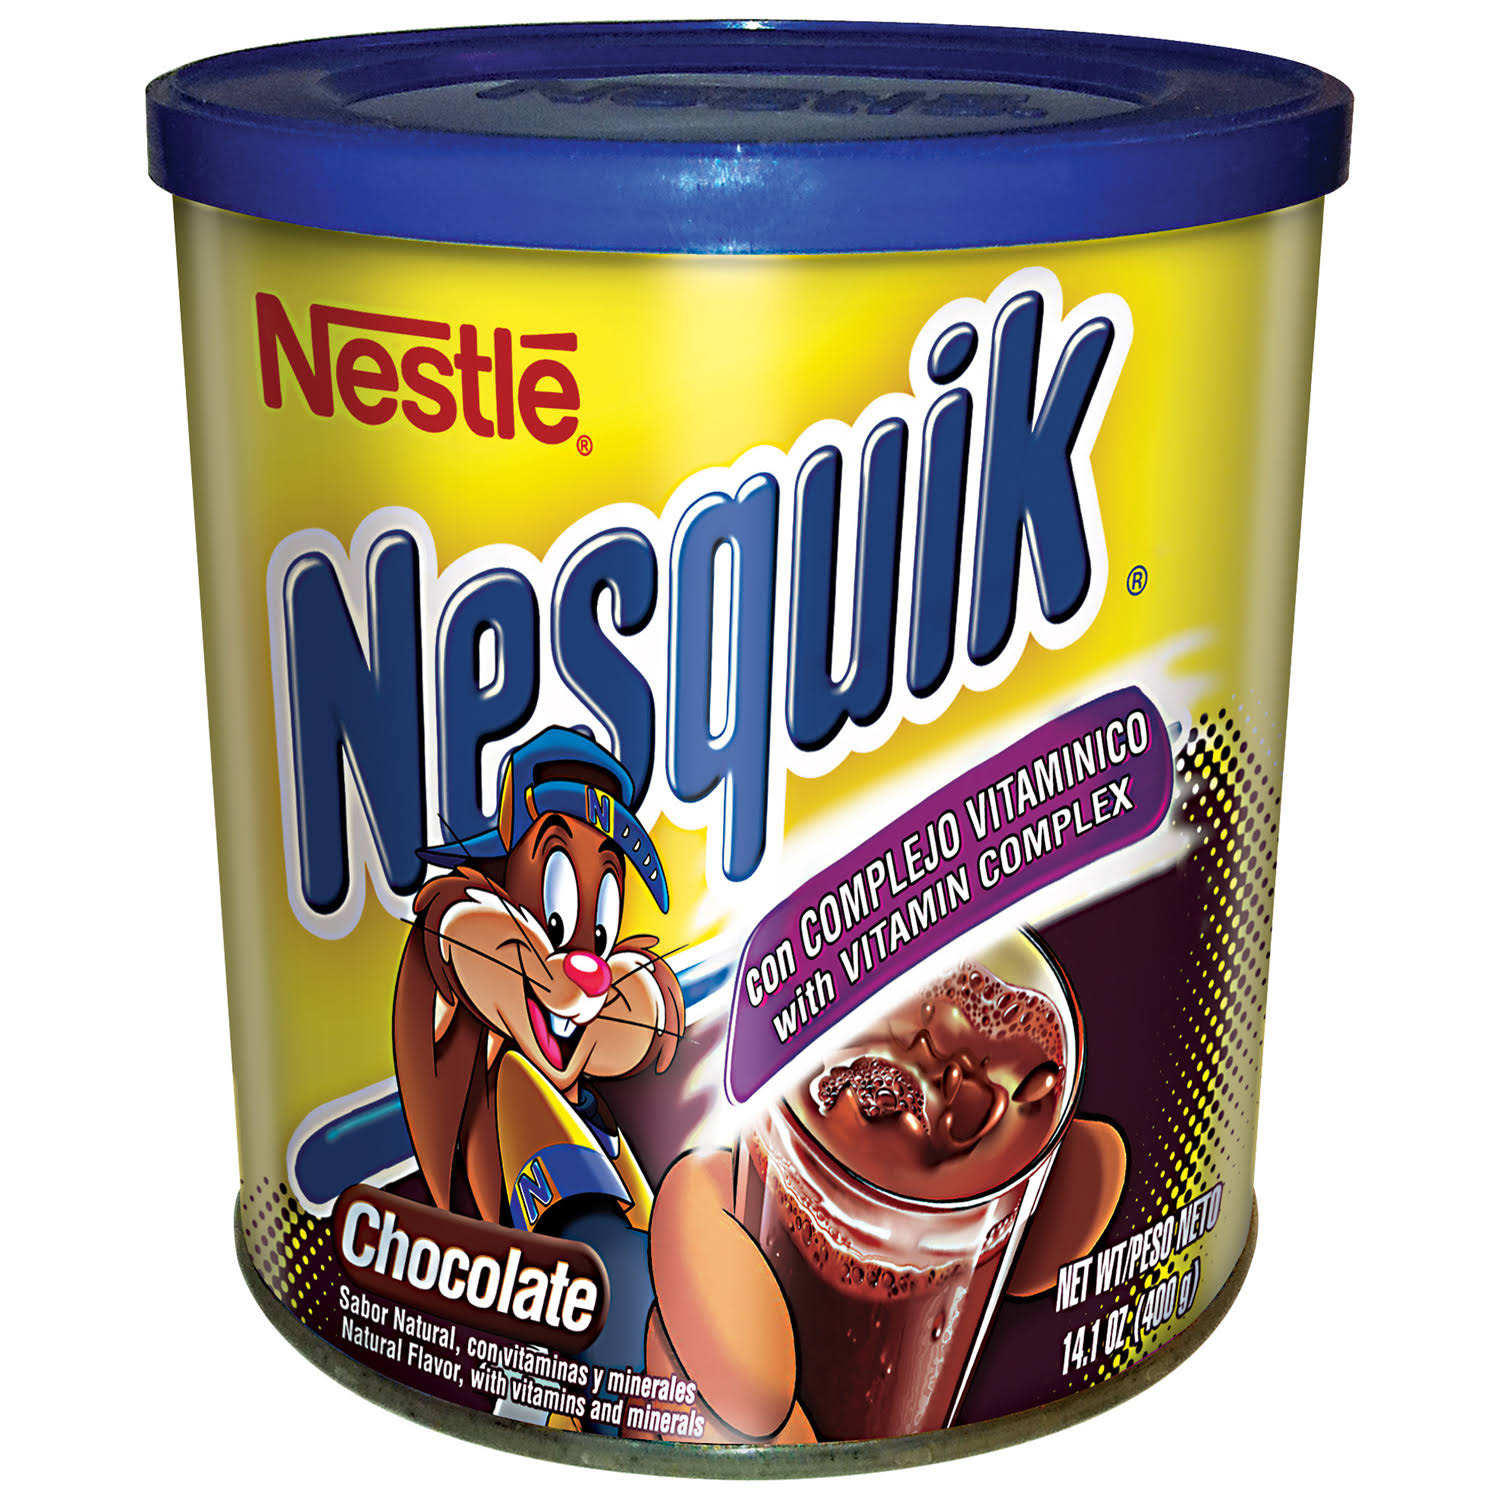 Nestle Nesquik Powder Drink Mix - Chocolate, 14.1oz